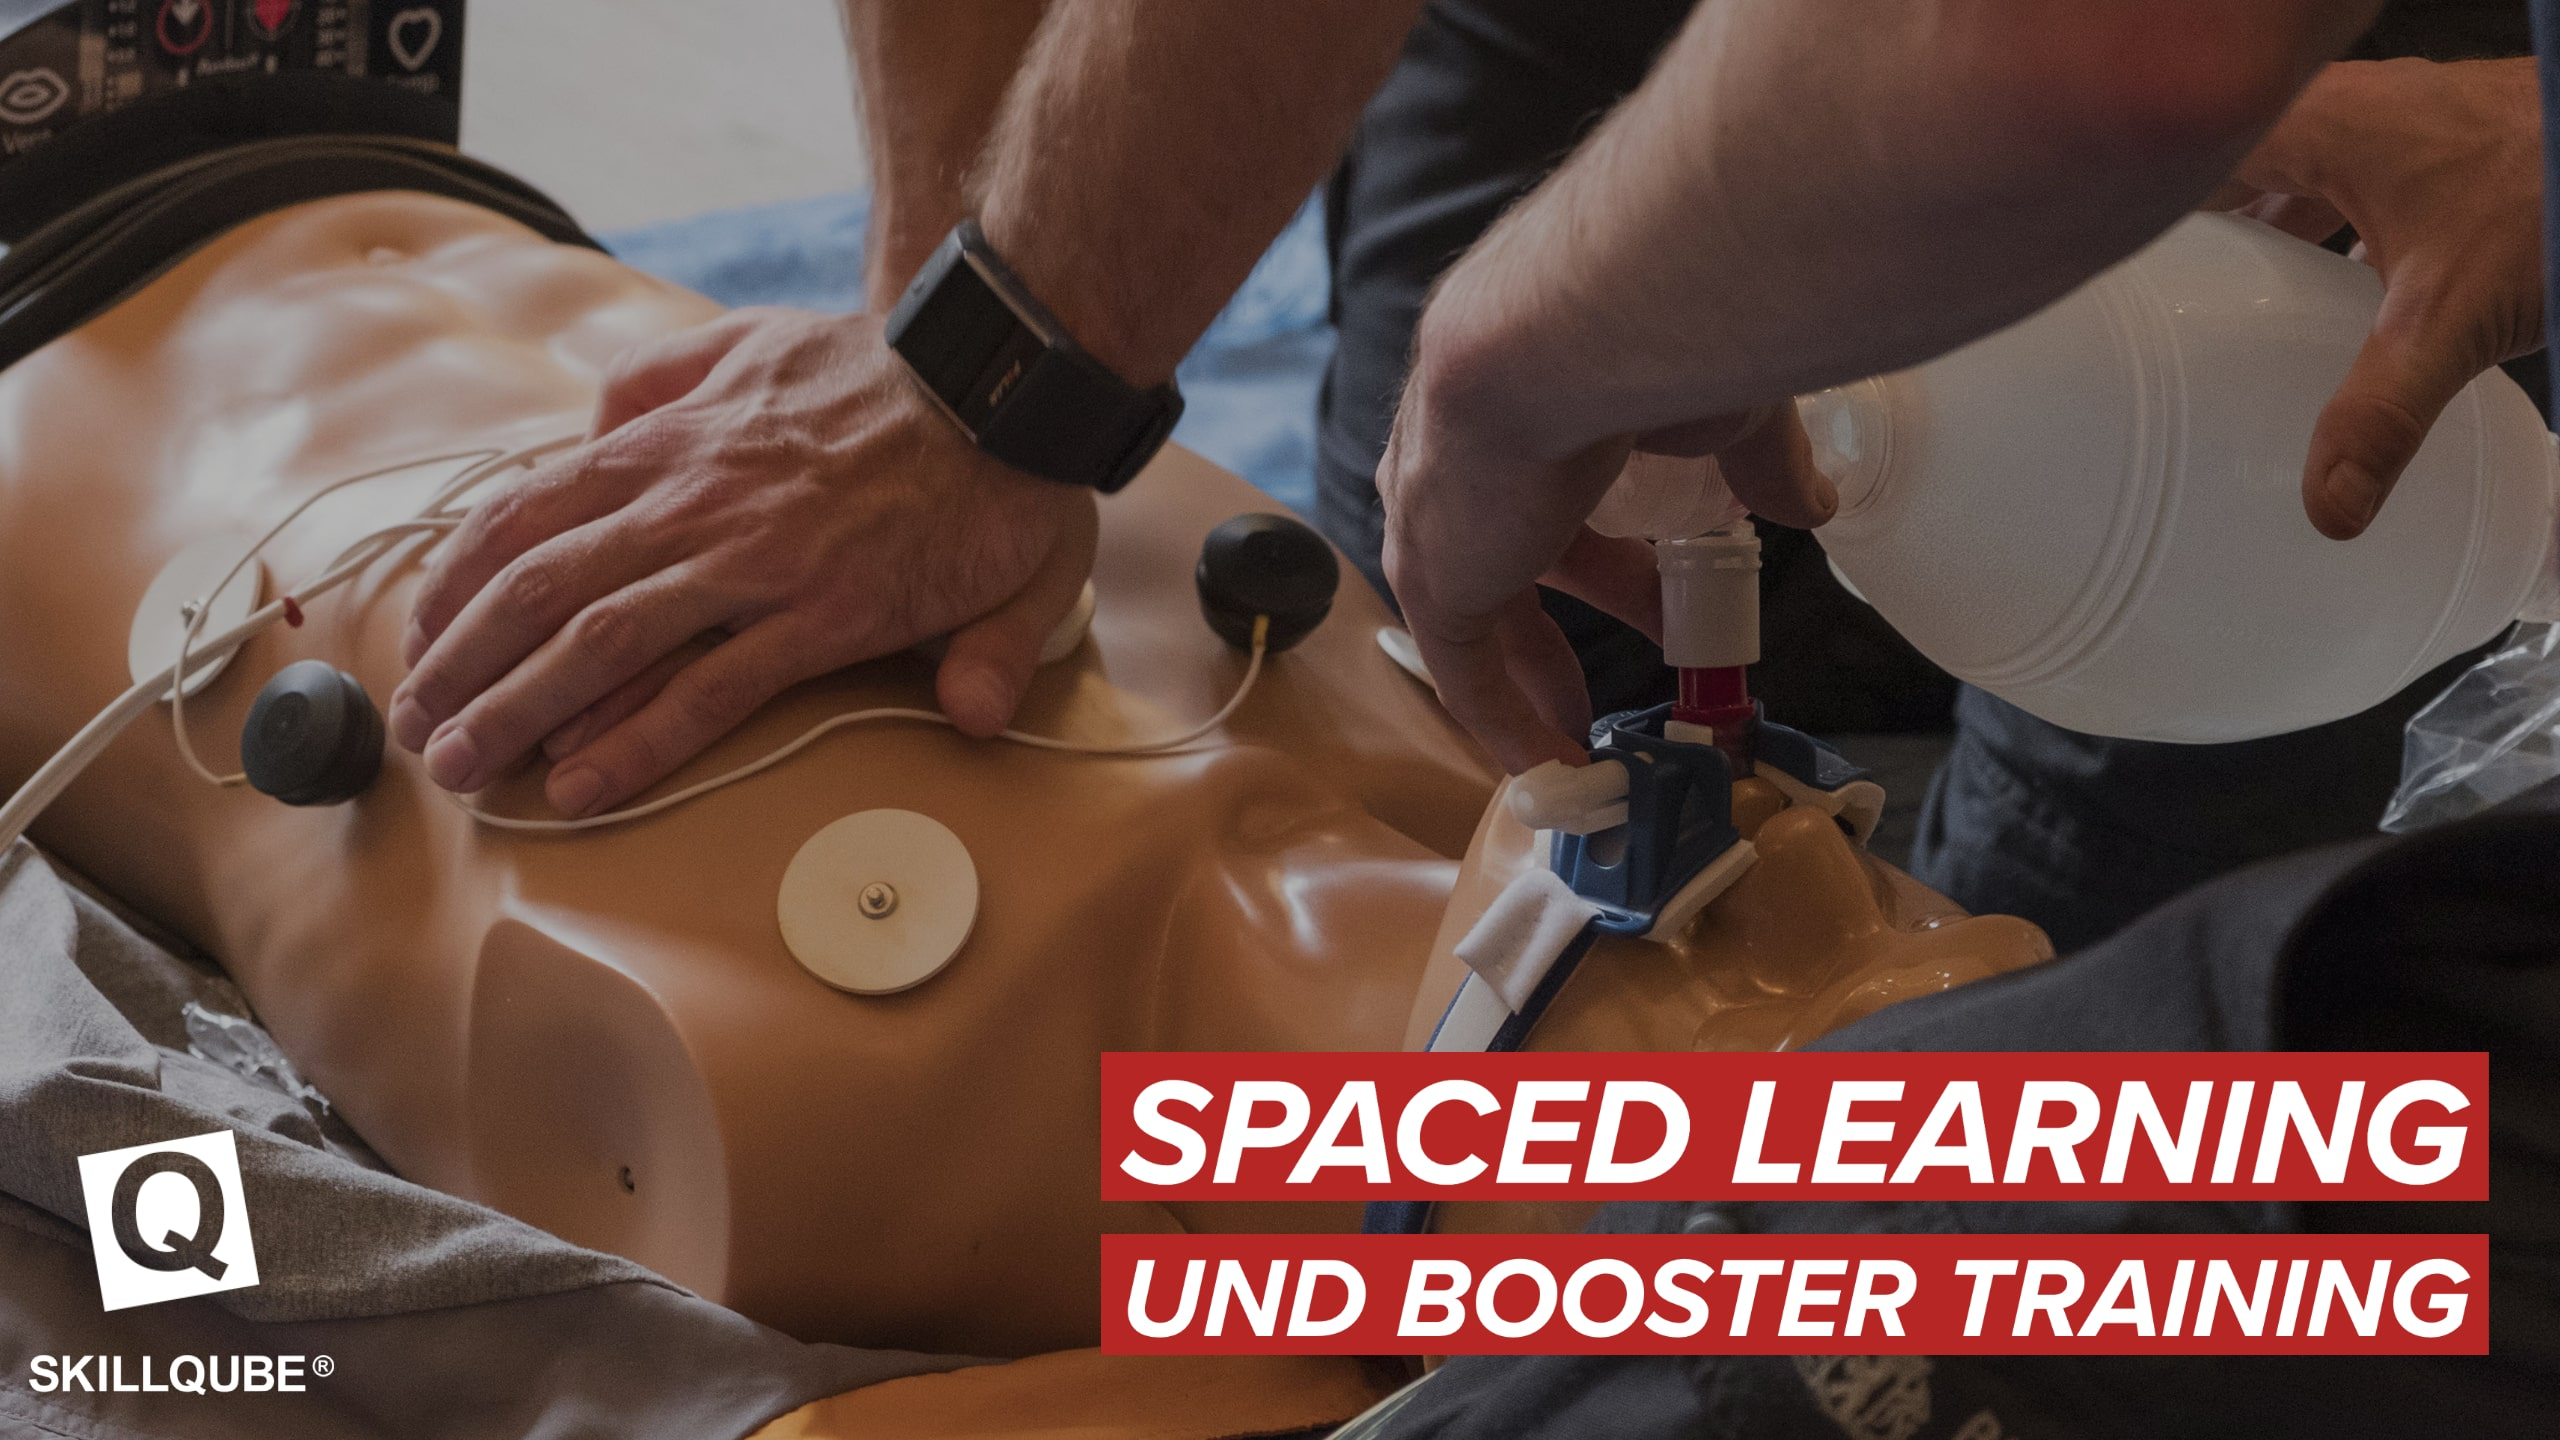 Spaced Learning und Booster Training